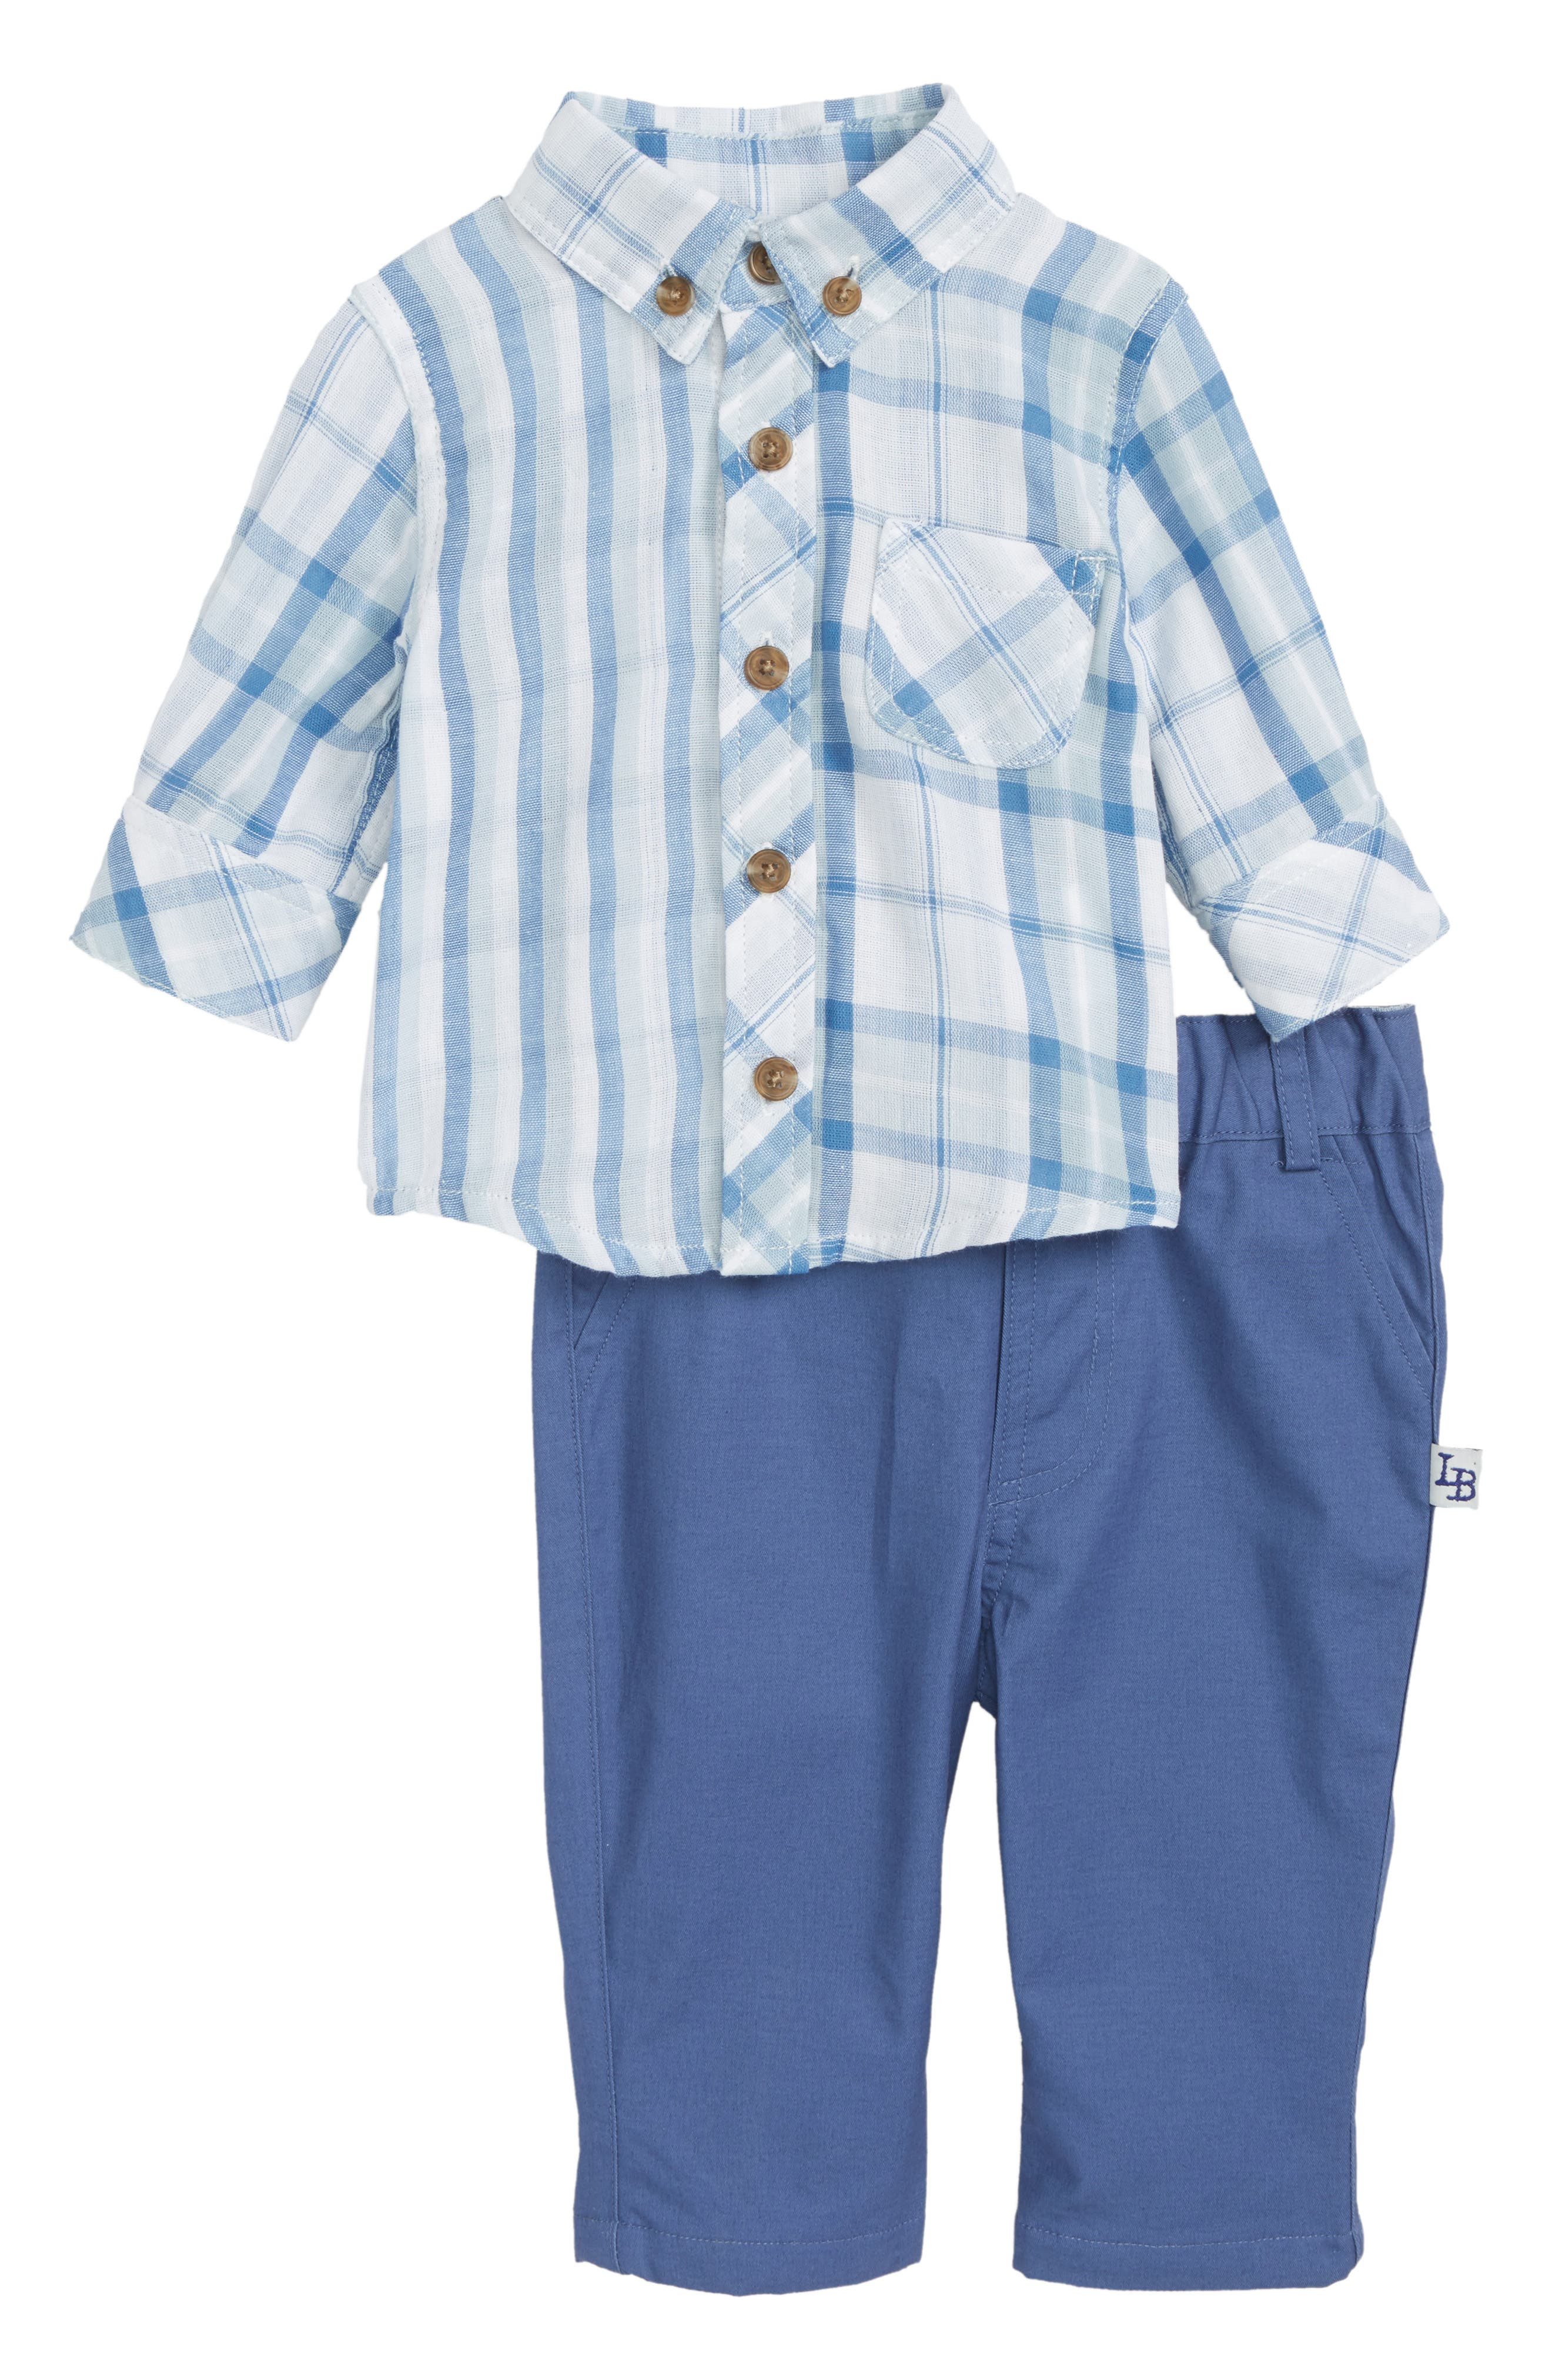 Little Brother by Pippa & Julie Mixed Plaid Top & Pants Set (Baby Boys)